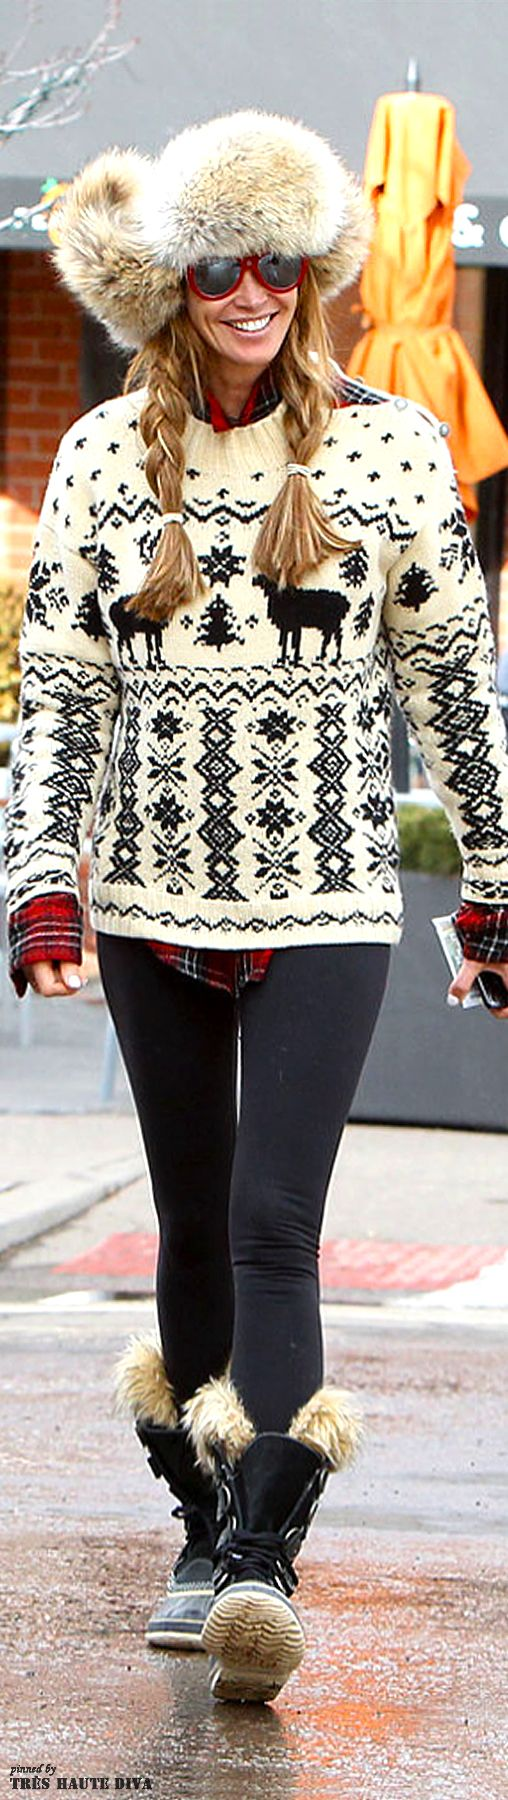 Elle Macpherson in fur trapper hat and Nordic sweater | The House of Beccaria Plaid shirt